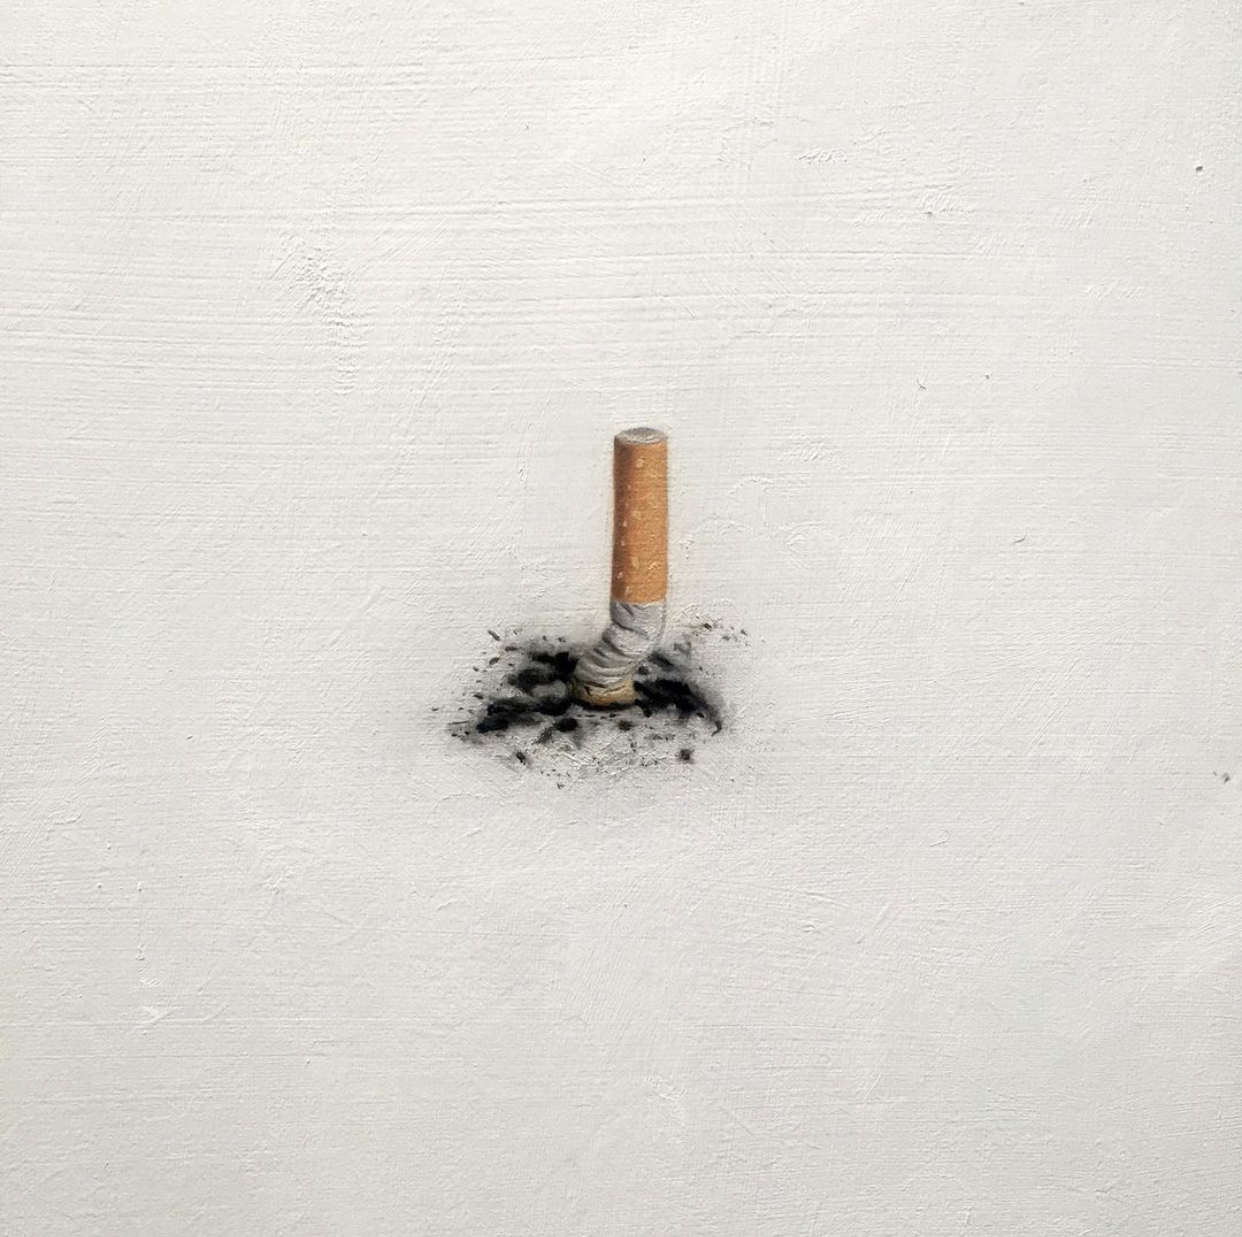 Callum Eaton - Another but. Oil on panel 30 x 30cm